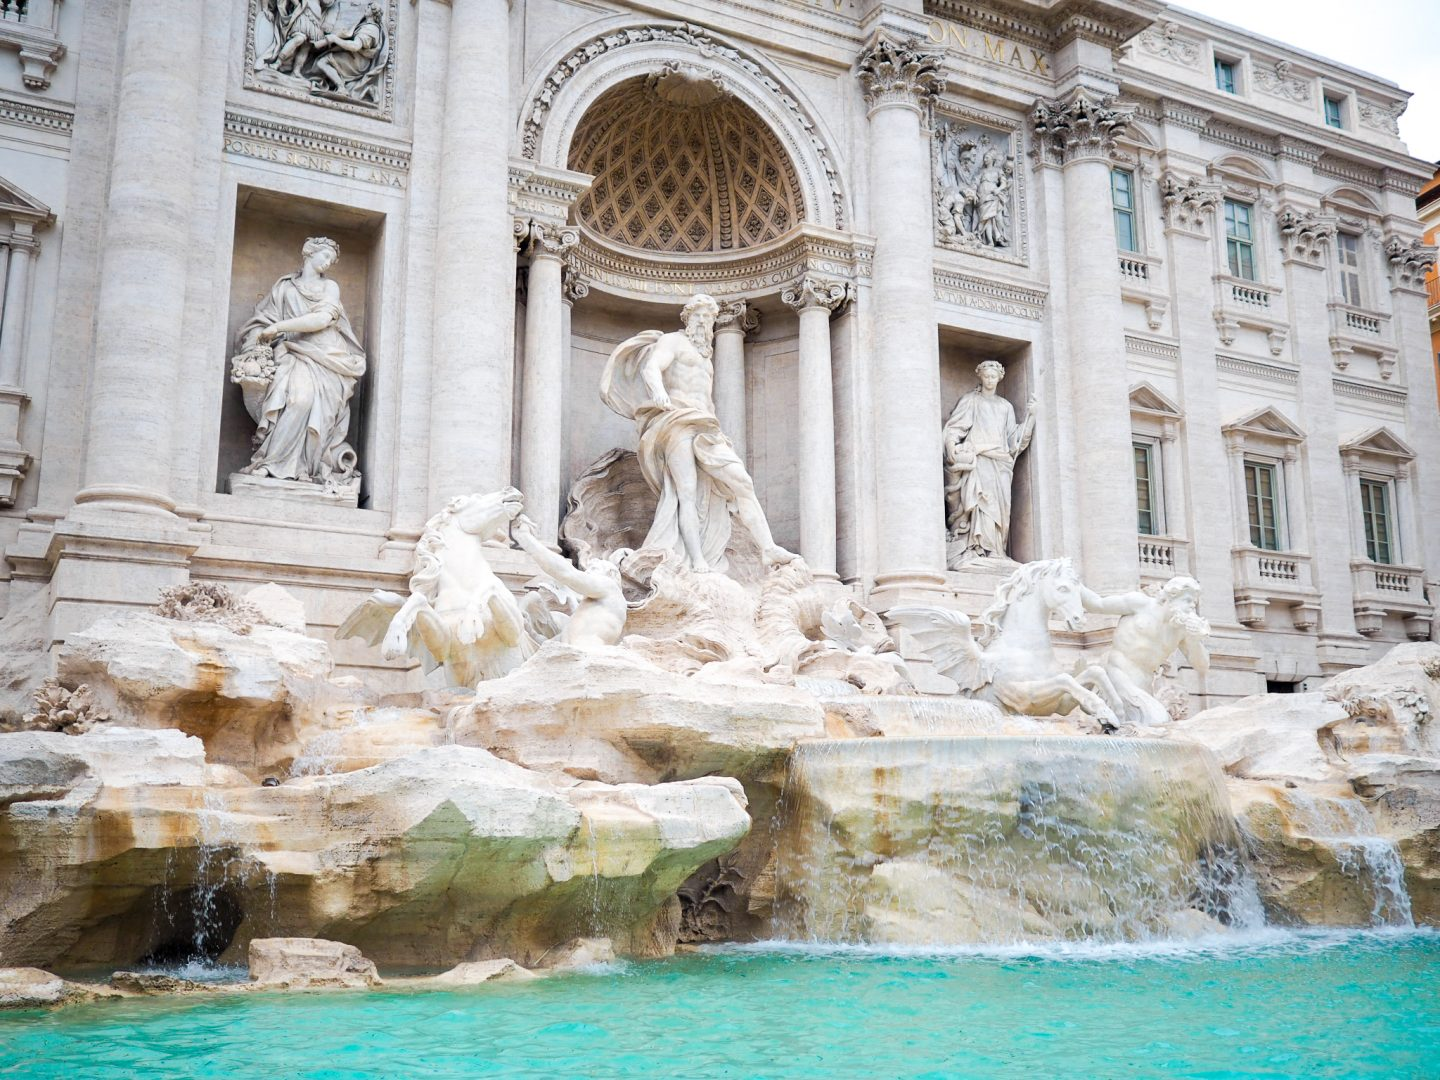 Instagram Location Photo Guide To Rome - Trevi Fountain